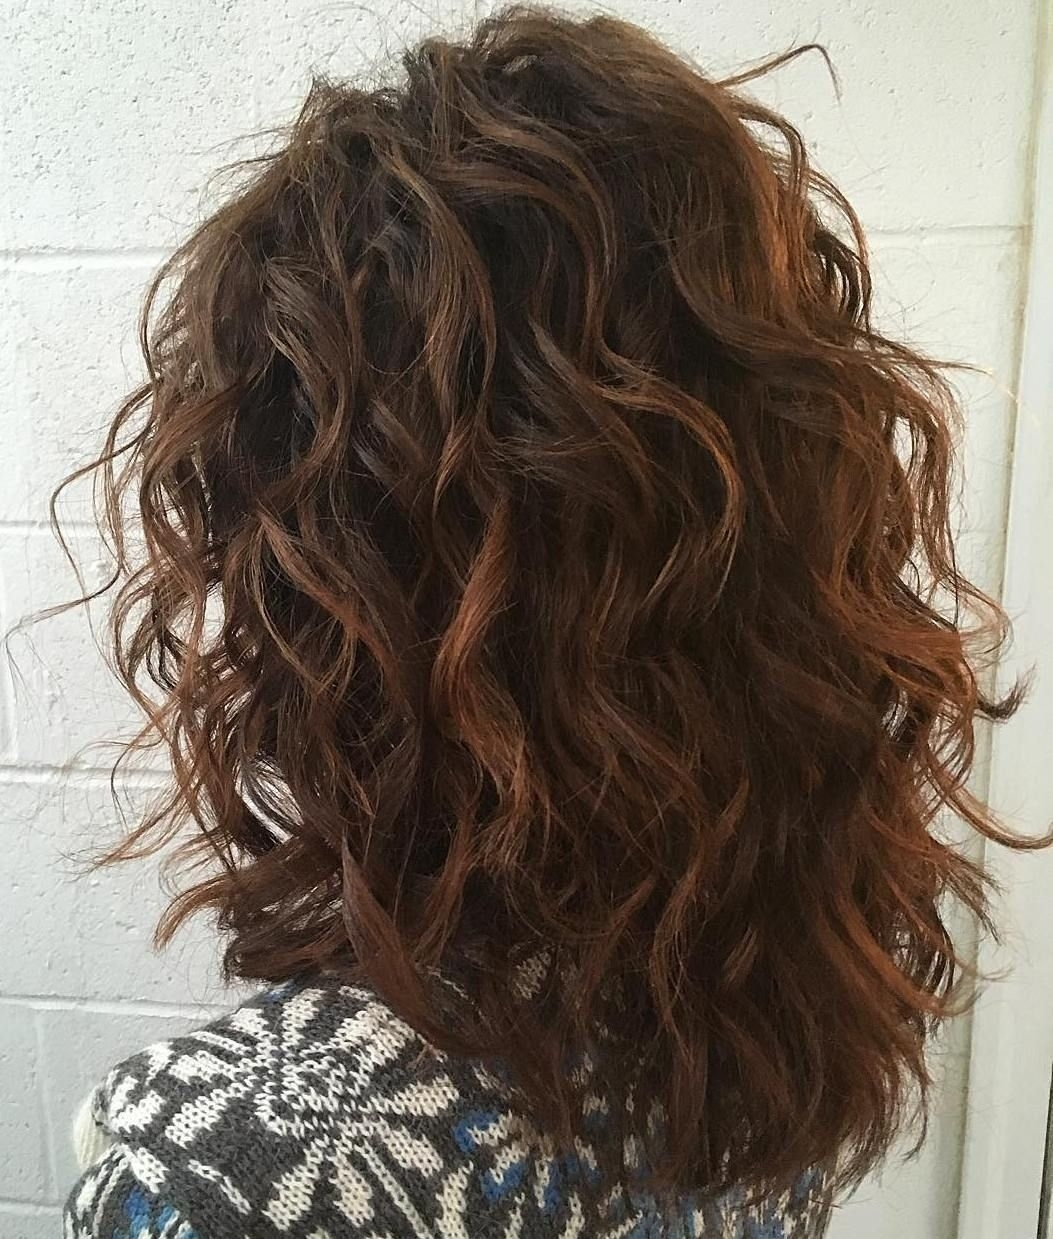 60 Most Magnetizing Hairstyles For Thick Wavy Hair | Cute Long within Cutting Wavy Hair In Layers